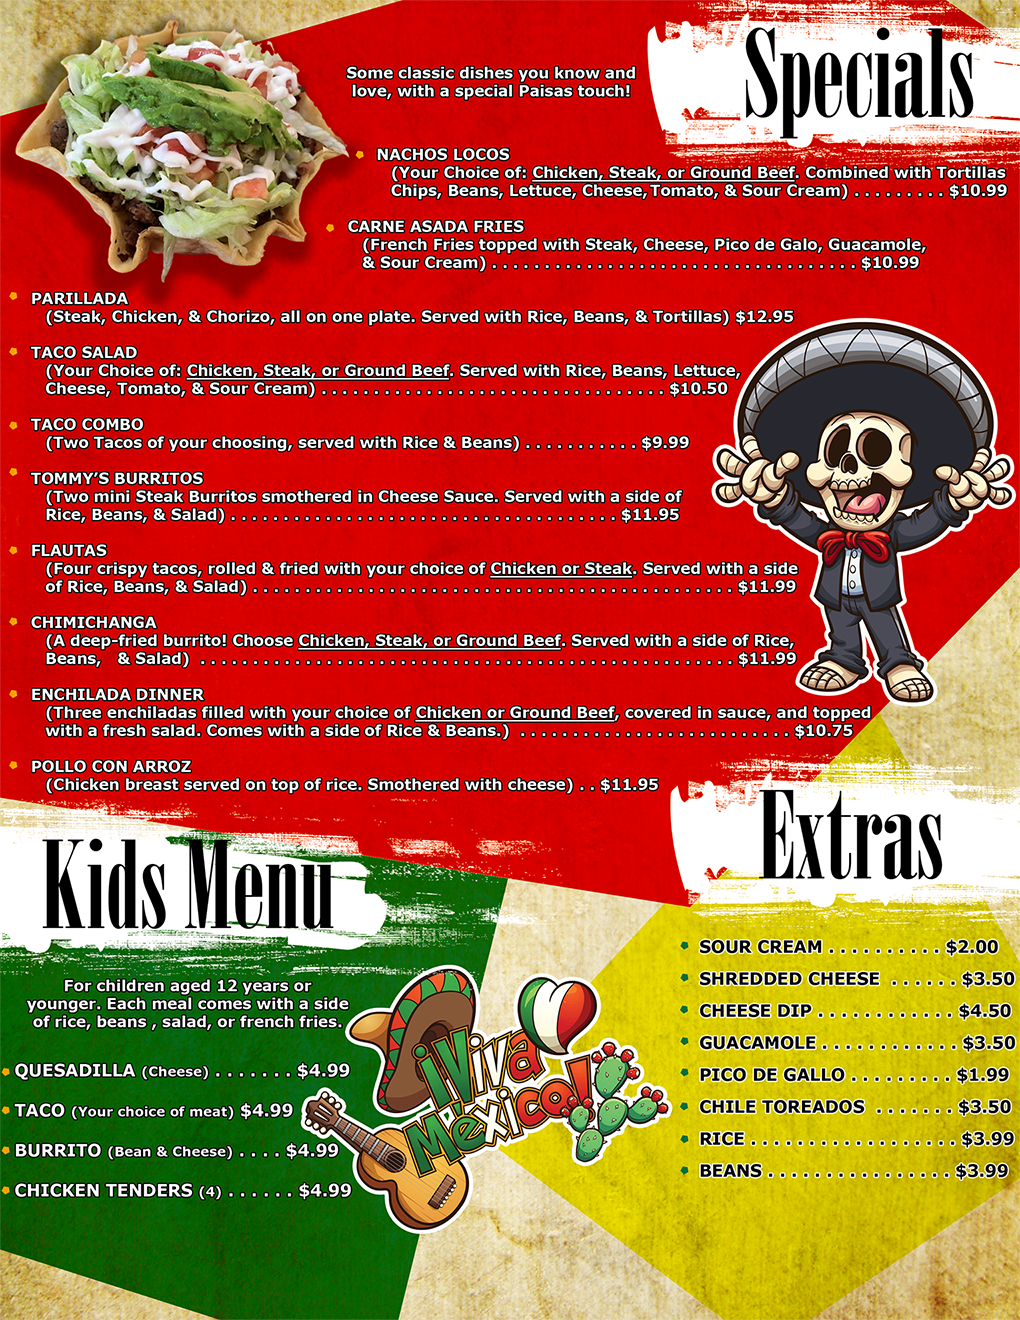 Specials, Kids Menu, and Side Orders